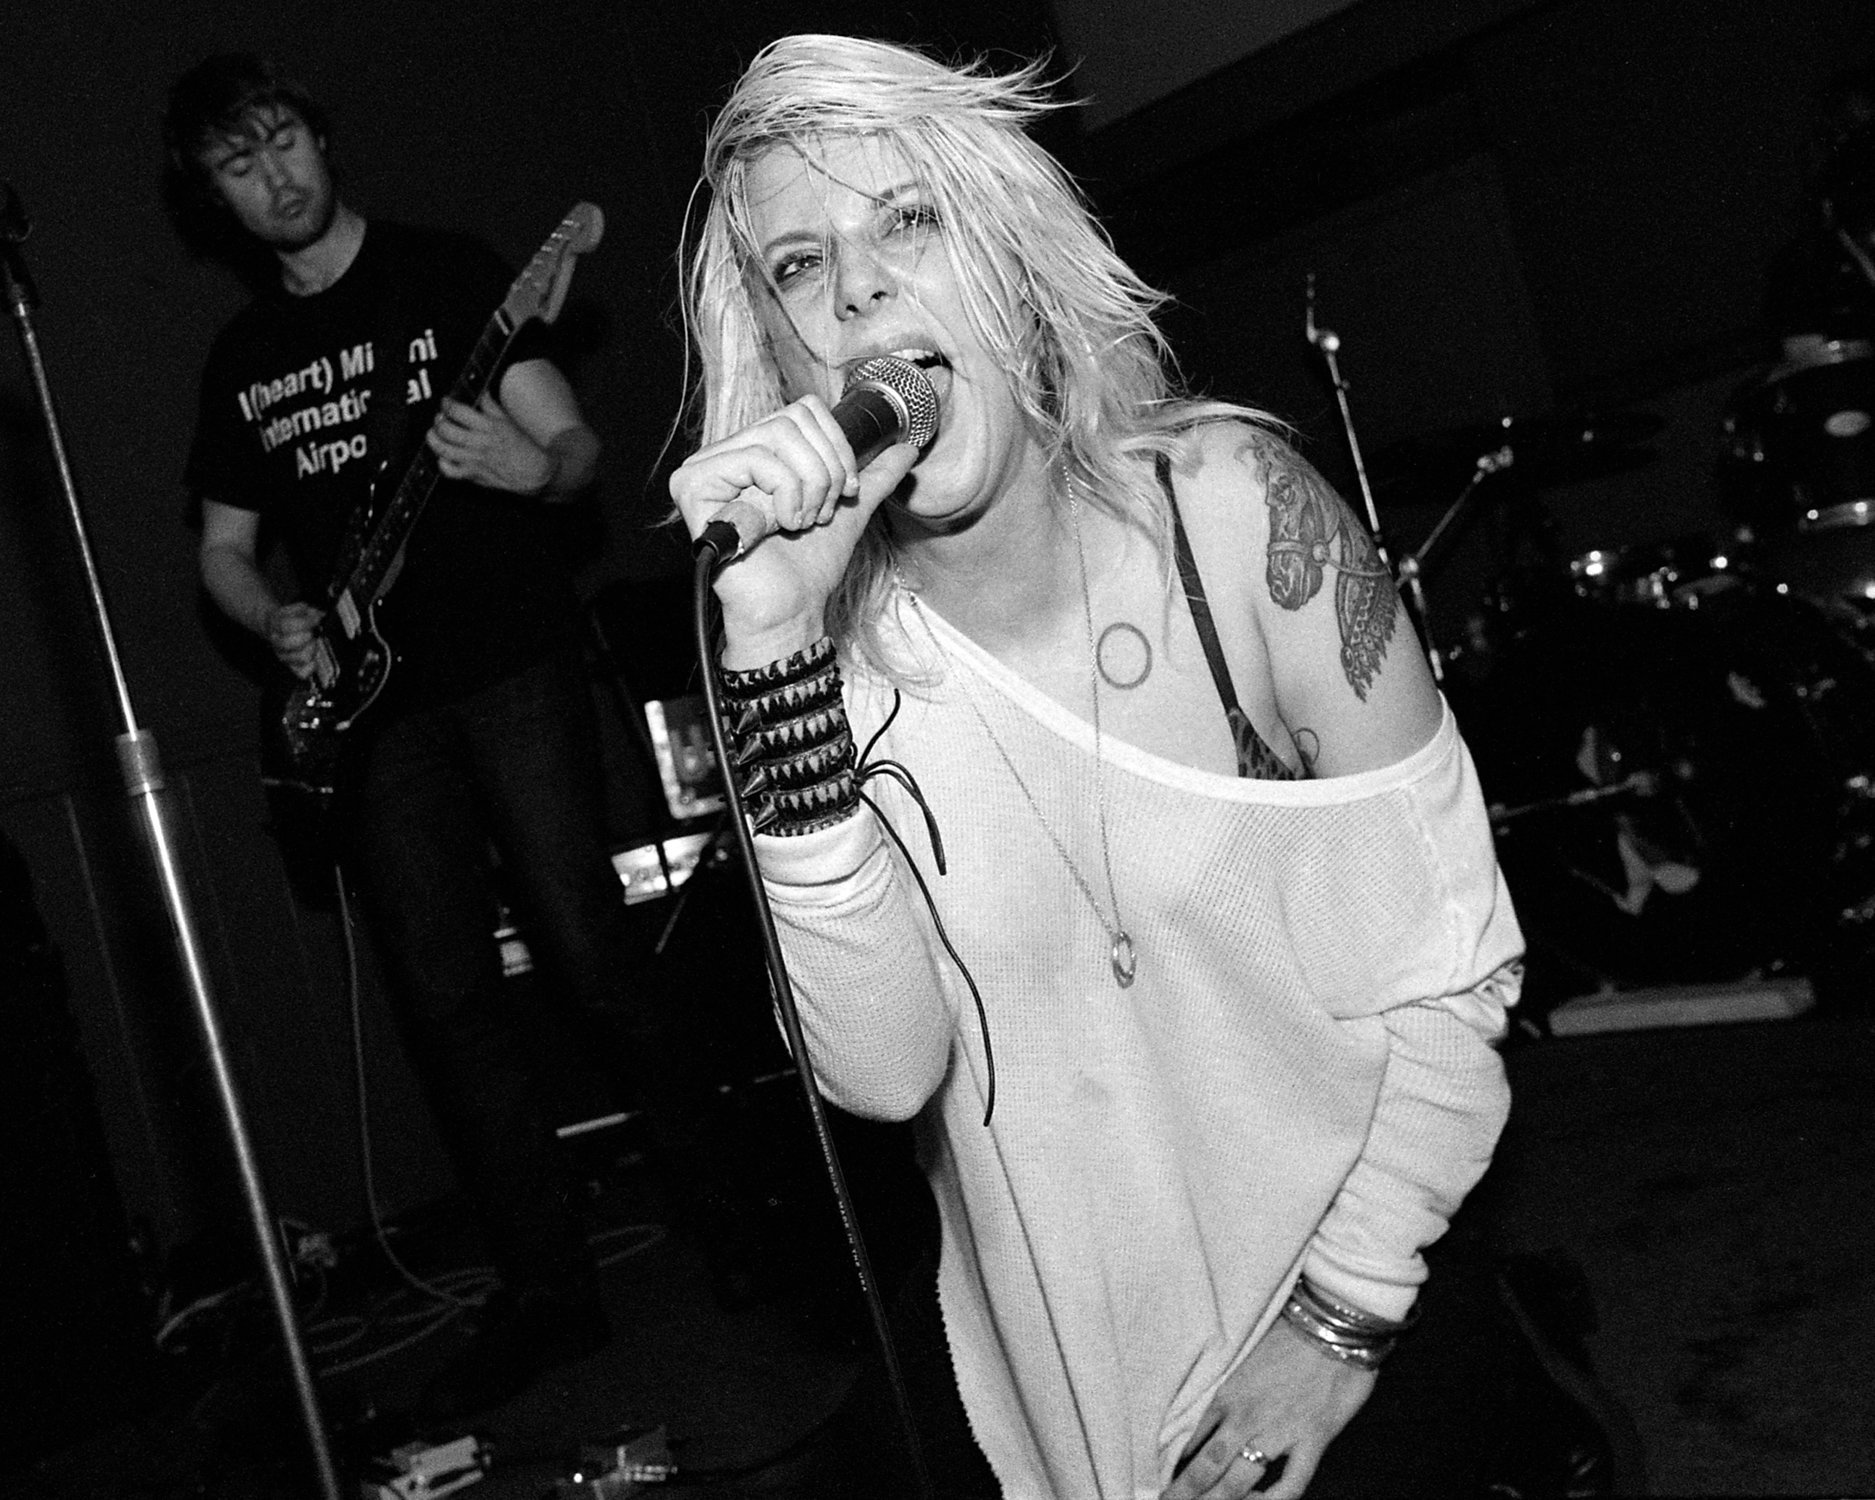 white lung @ beachland tavern, cleveland oh